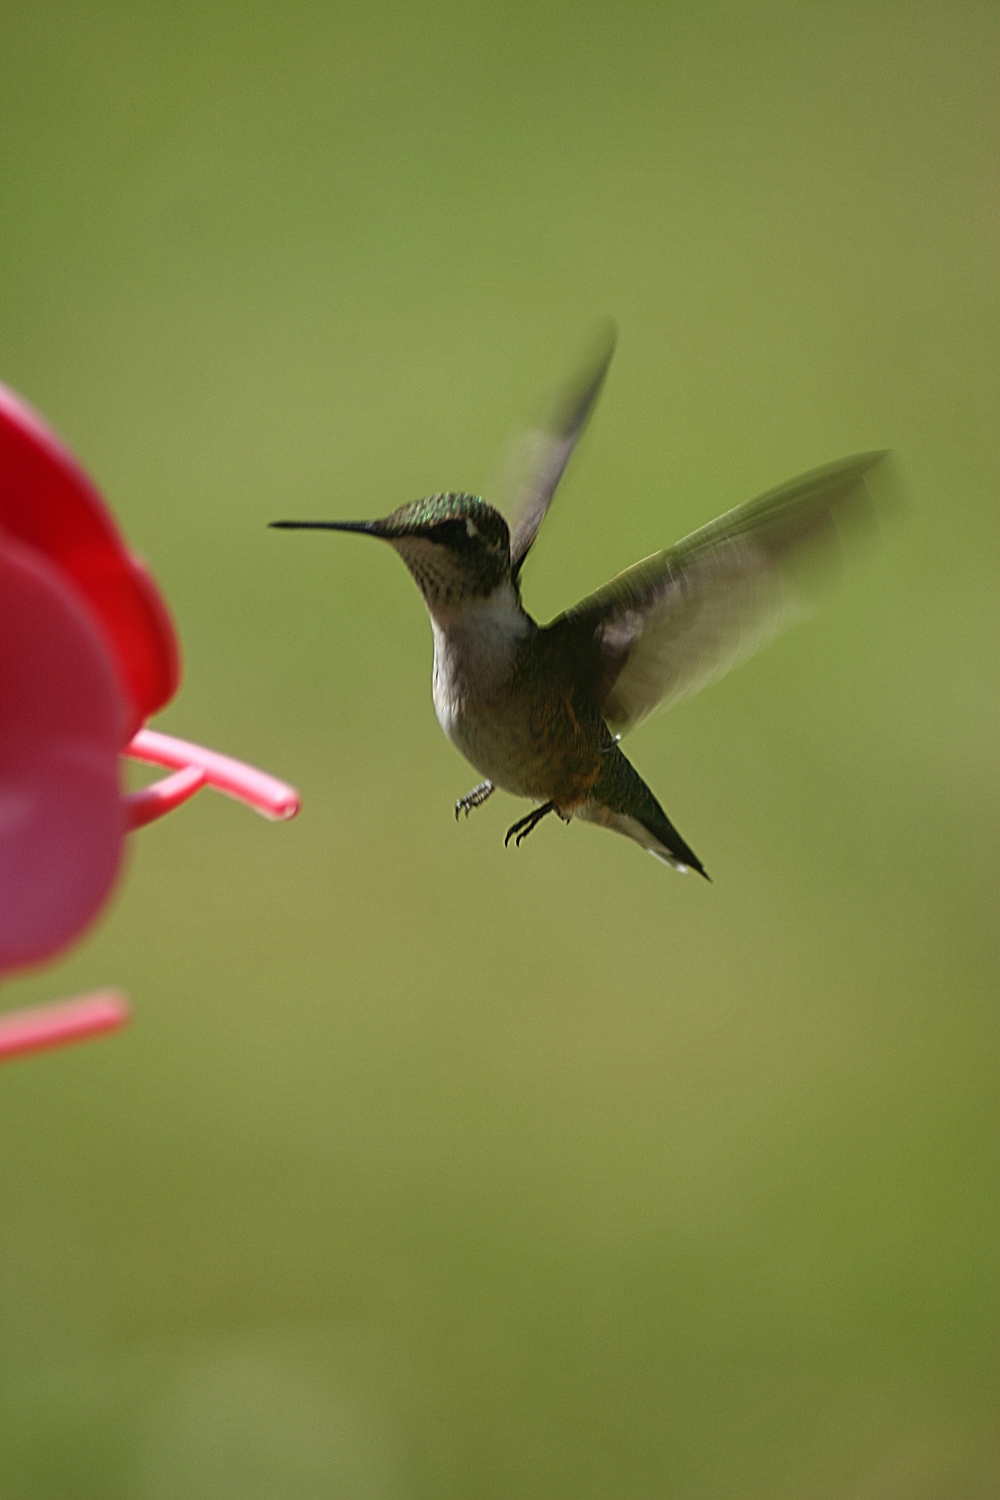 Mid-Air Humming Bird